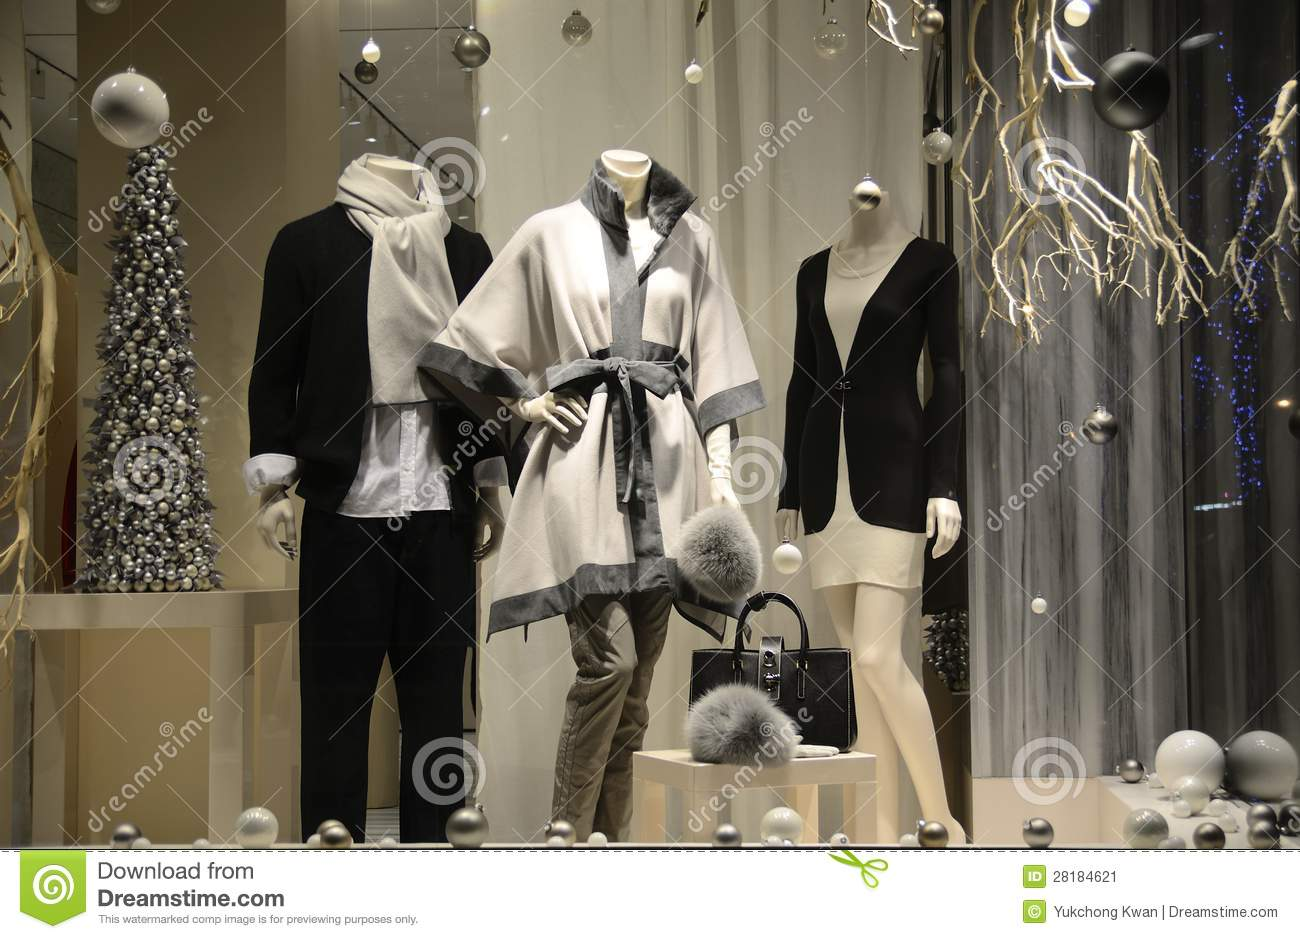 Display window from a clothing store concept of luxury clothing